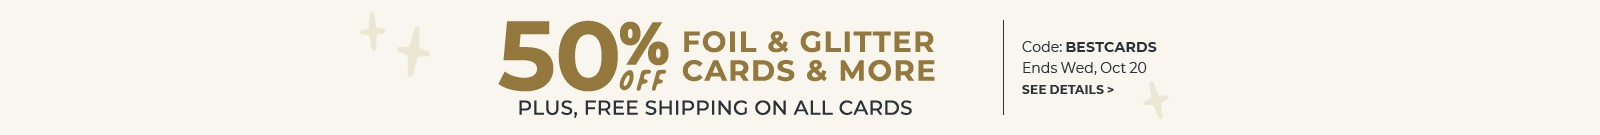 50% off foil & glitter cards & more, plus free shipping on all cards, code: BESTCARDS, Ends Wed, Oct 20, see details